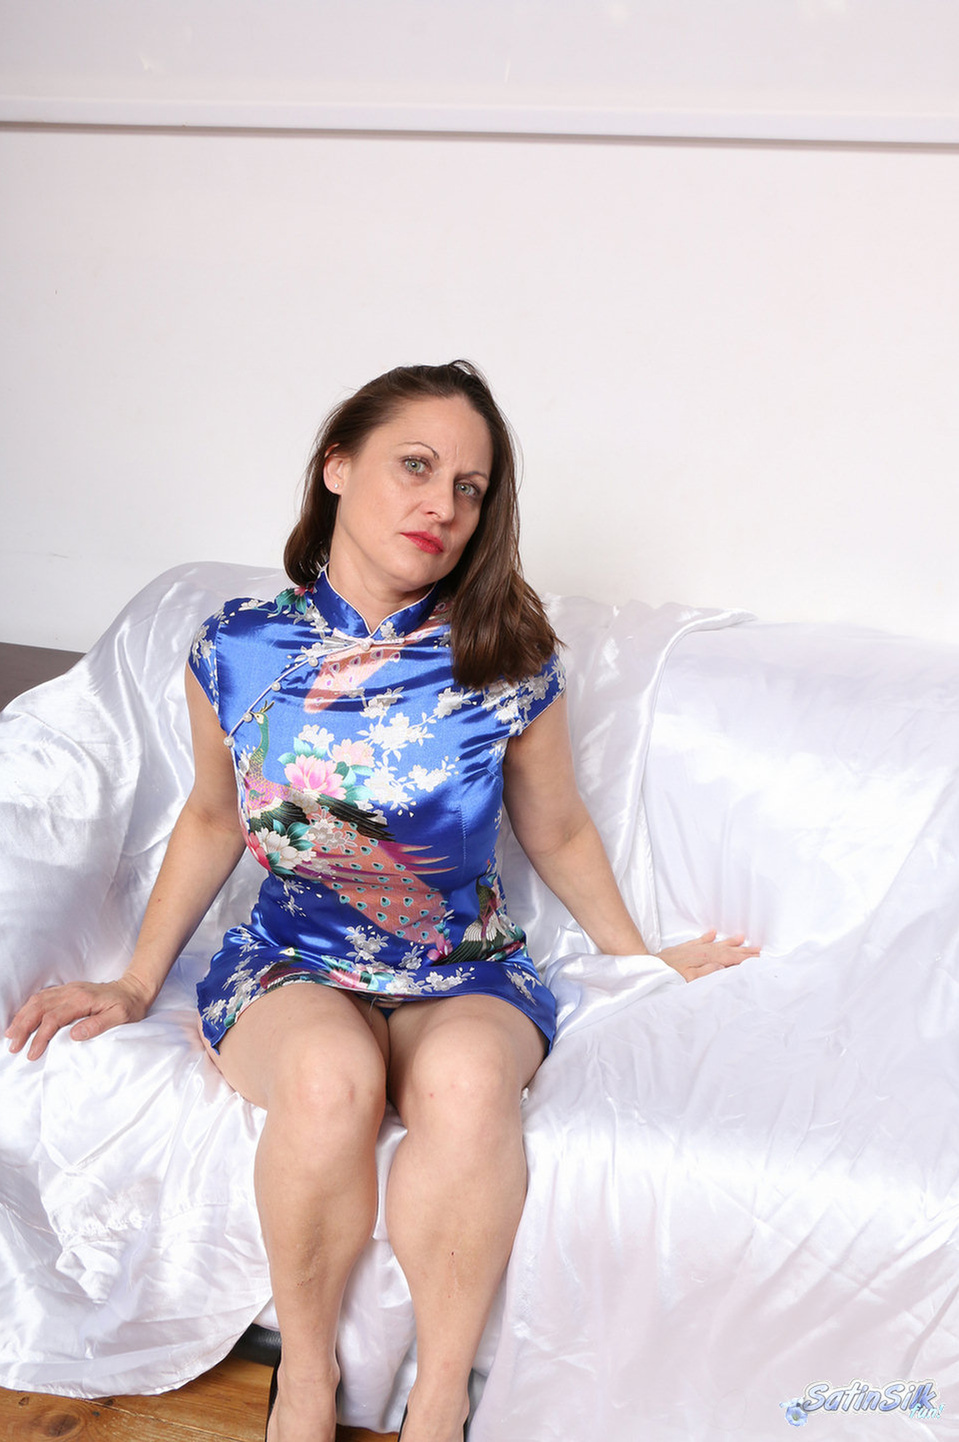 Satin Silk Fun December 2015 2 - Satiny